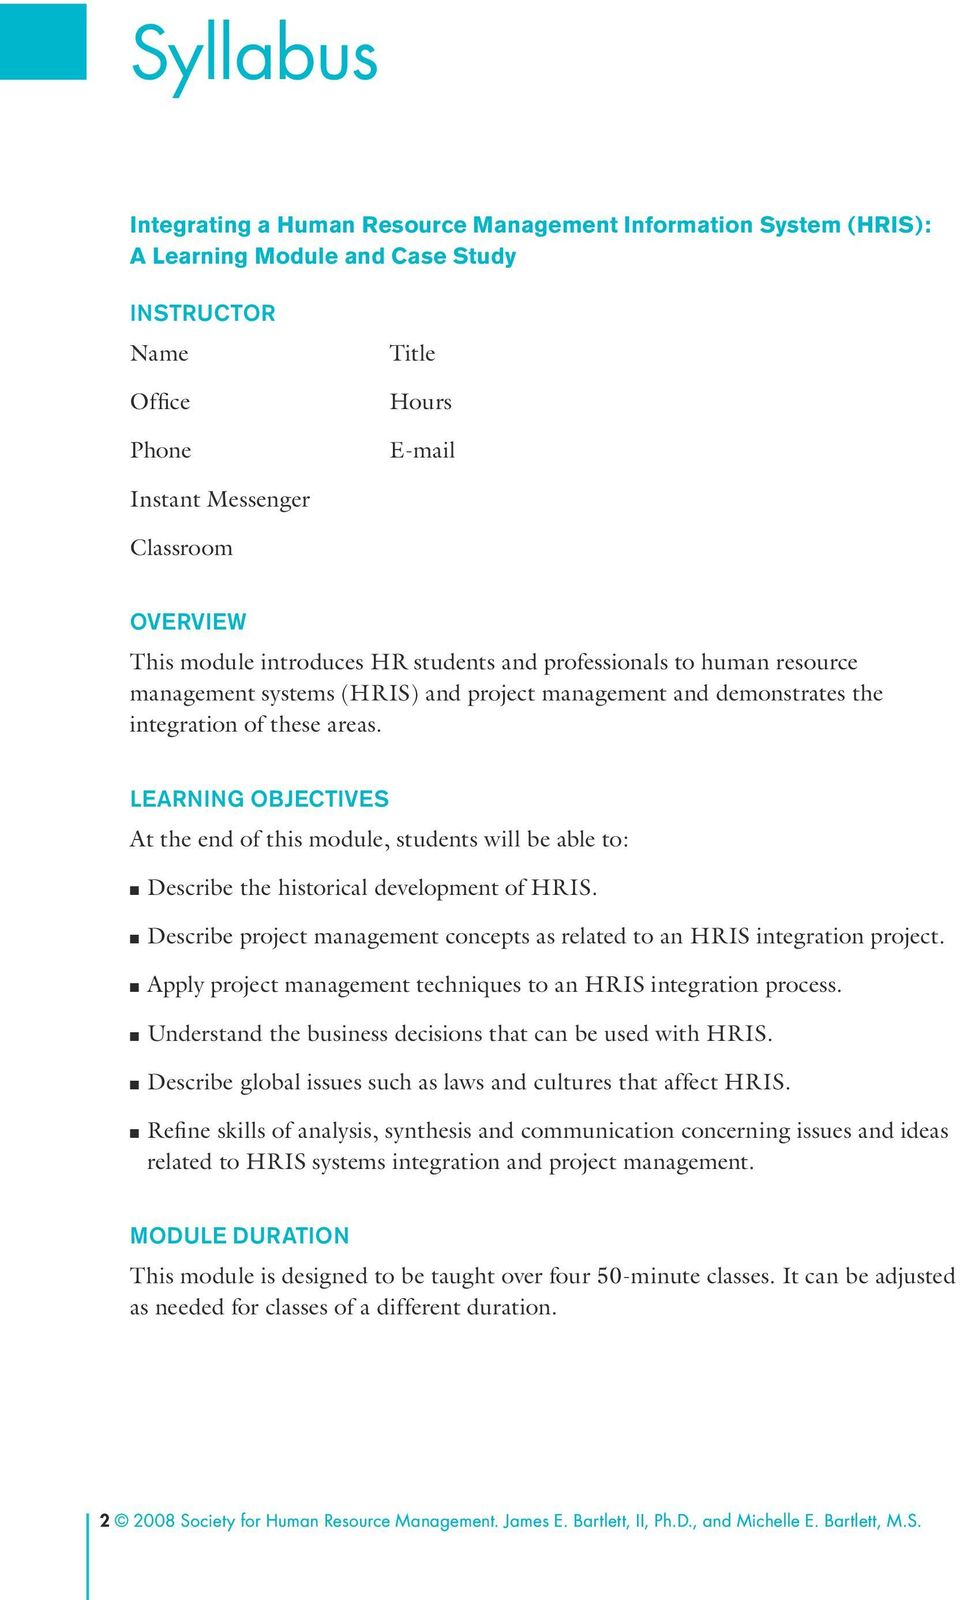 LEARNING OBJECTIVES At the end of this module, students will be able to: nn Describe the historical development of HRIS.